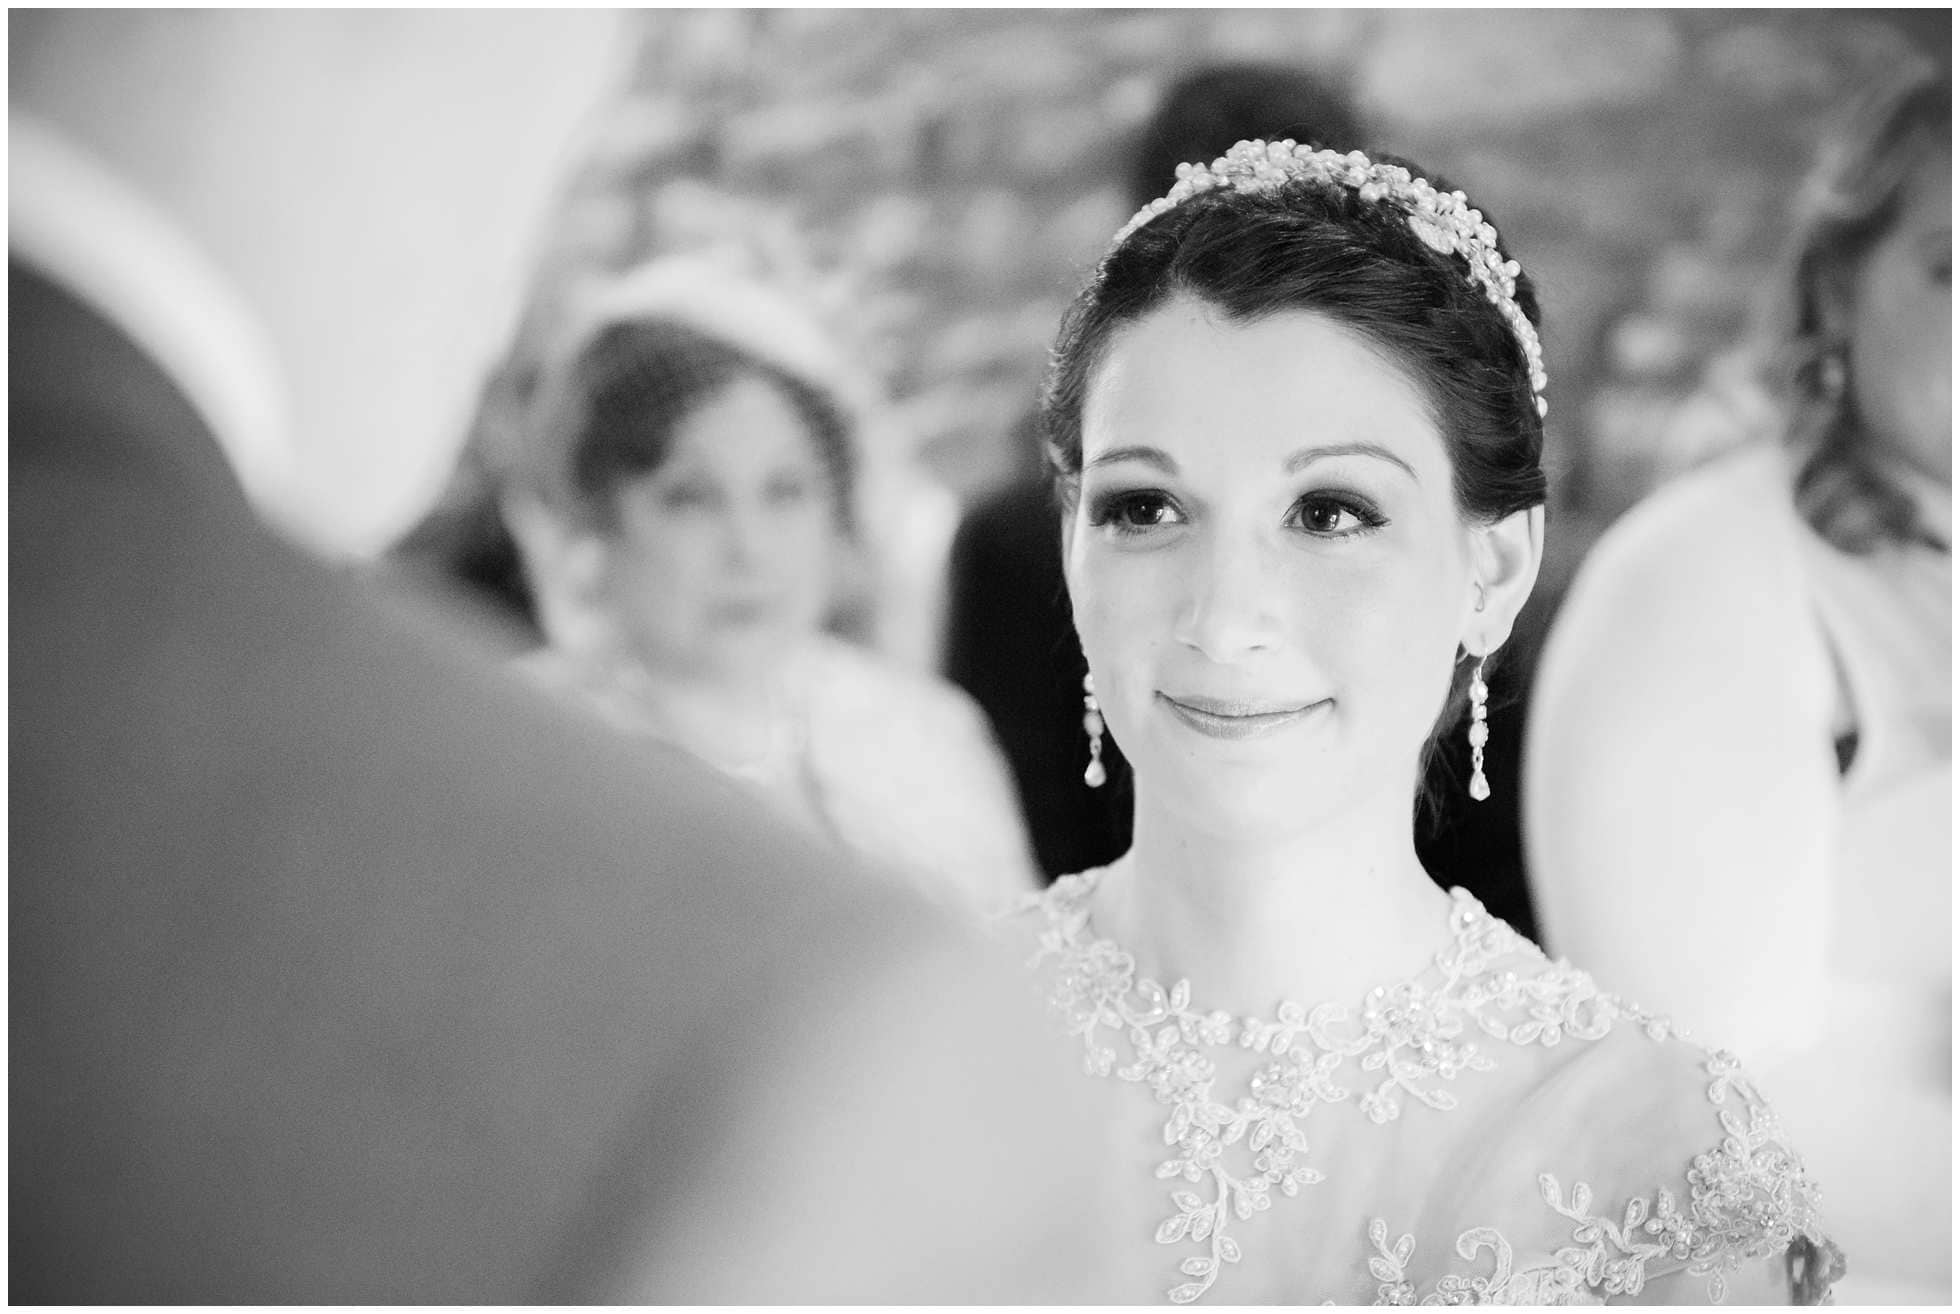 Bride at the alter looking stunning Trevena Wedding Photography in Cornwall